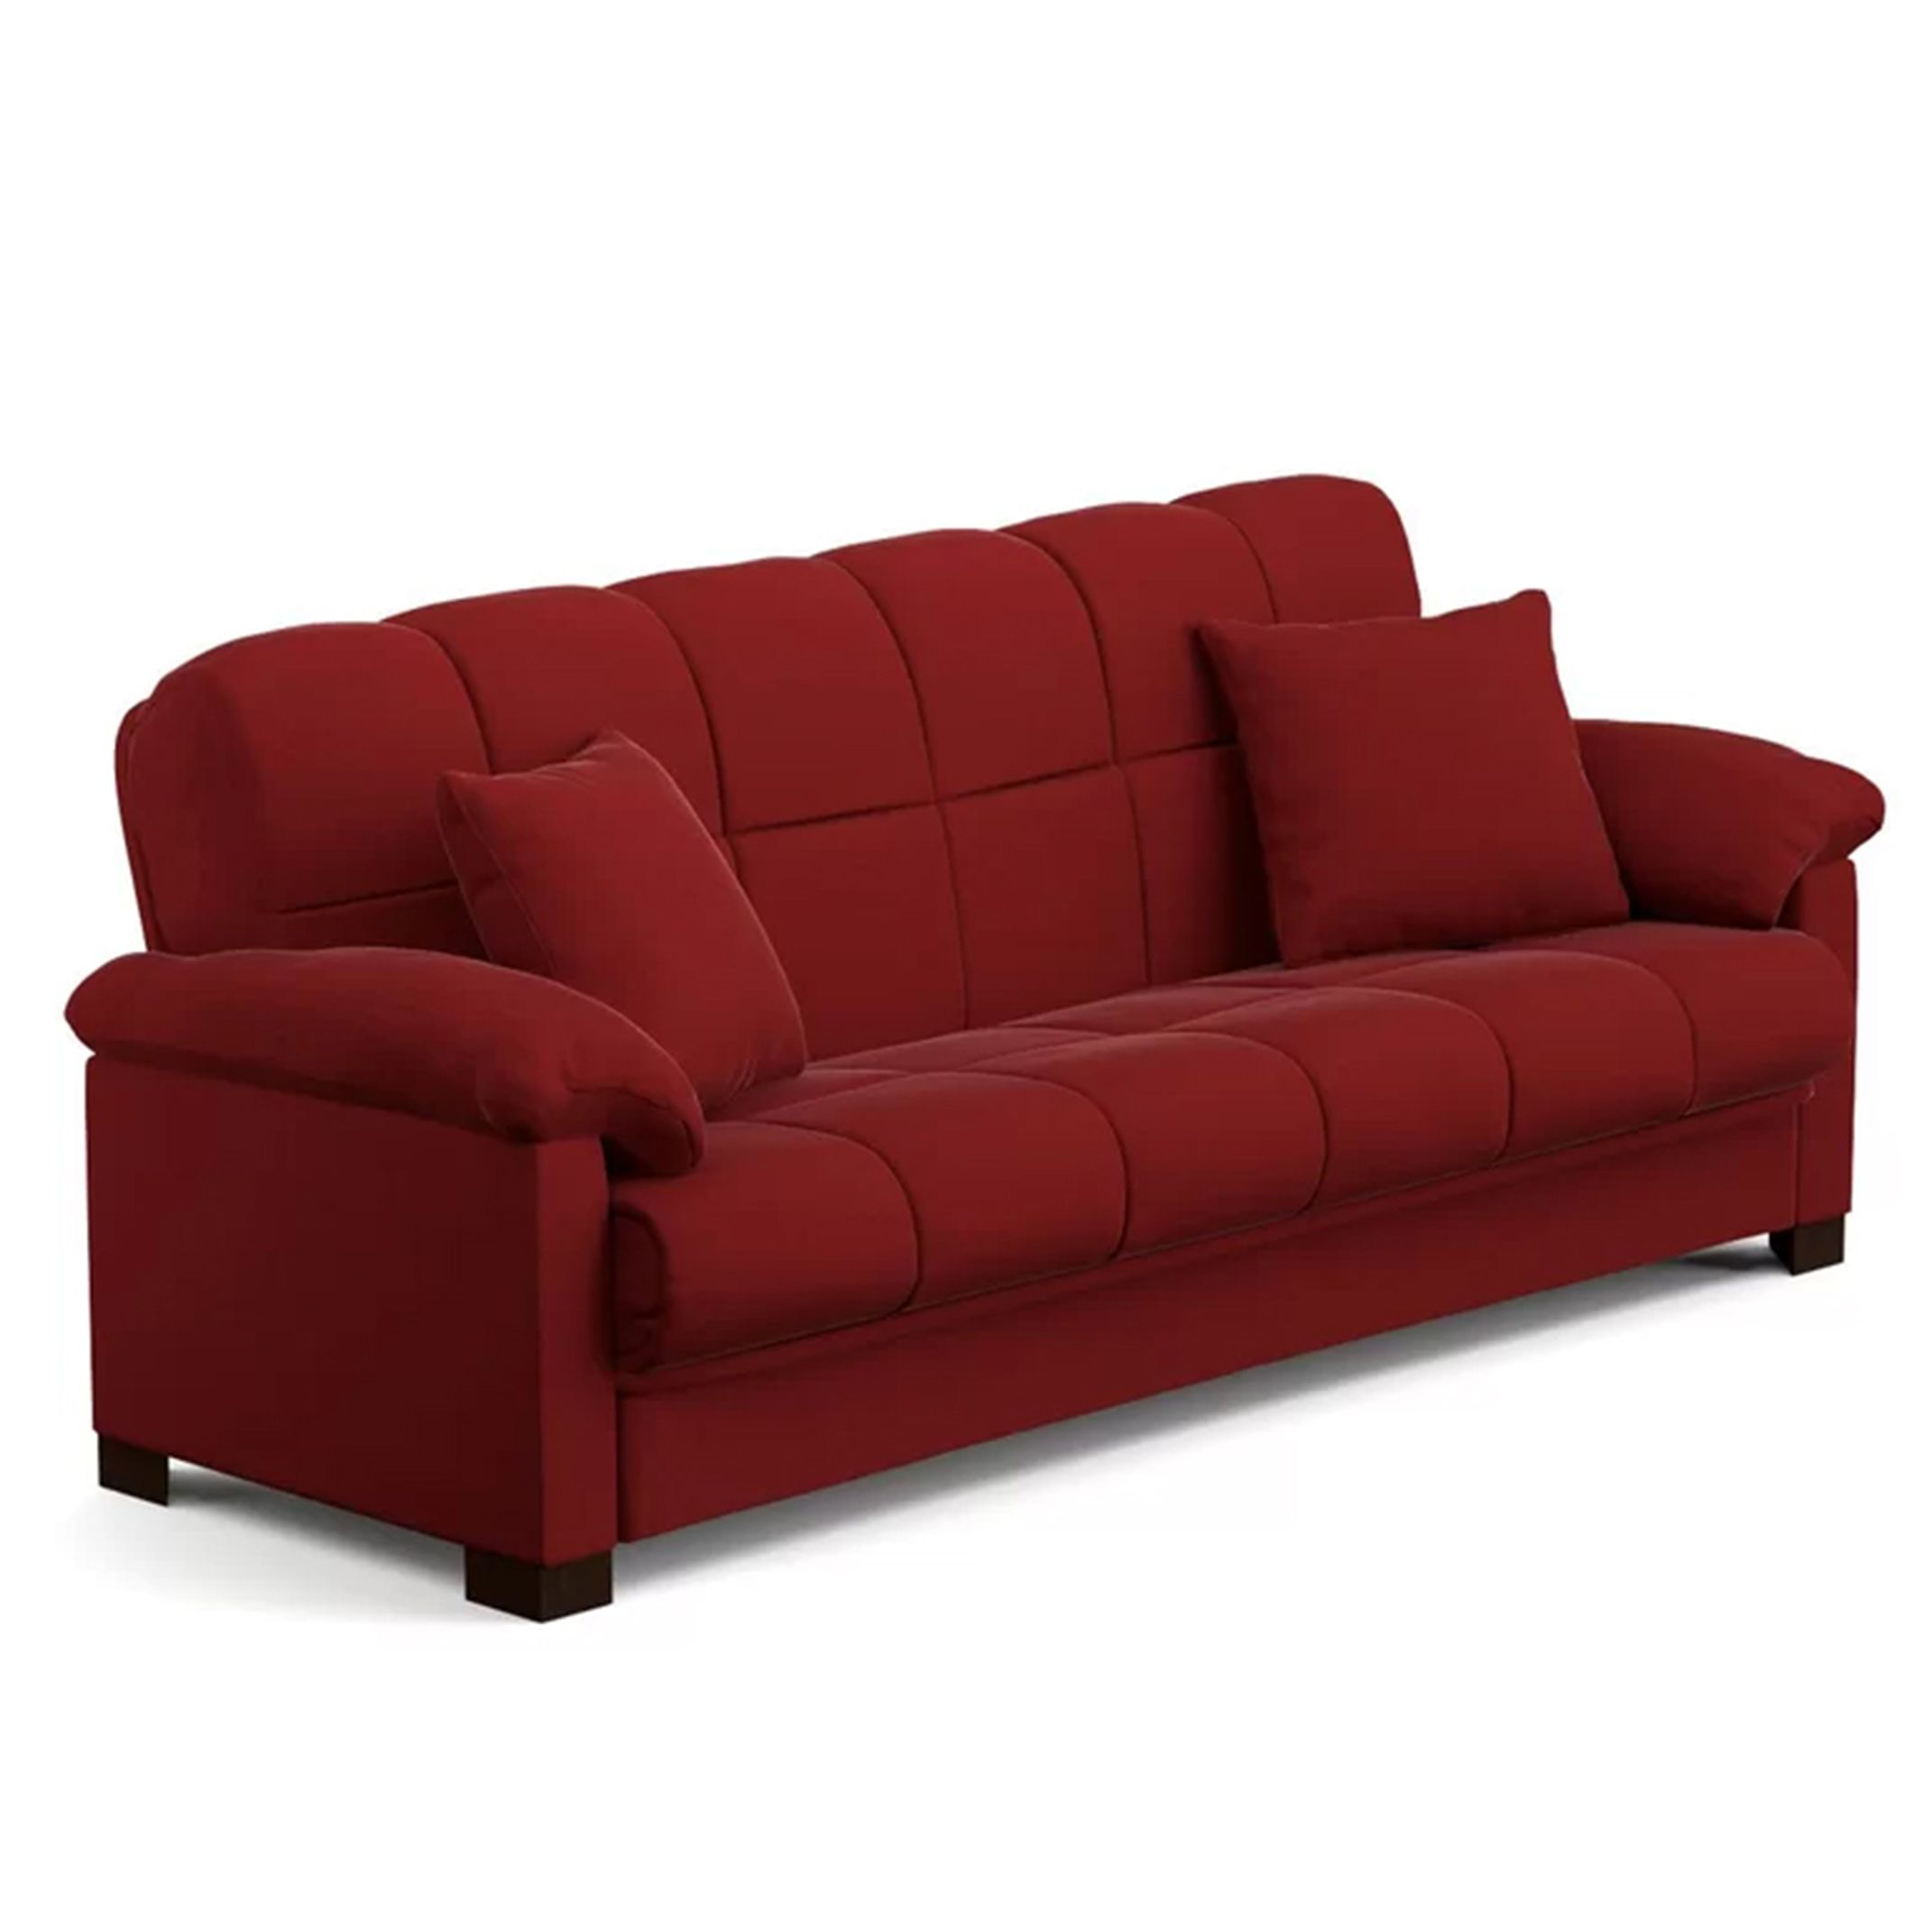 Sofa Set Online Below 10000 Sofa Set Online Cheap Sofa Sets Wooden Sofa Designs